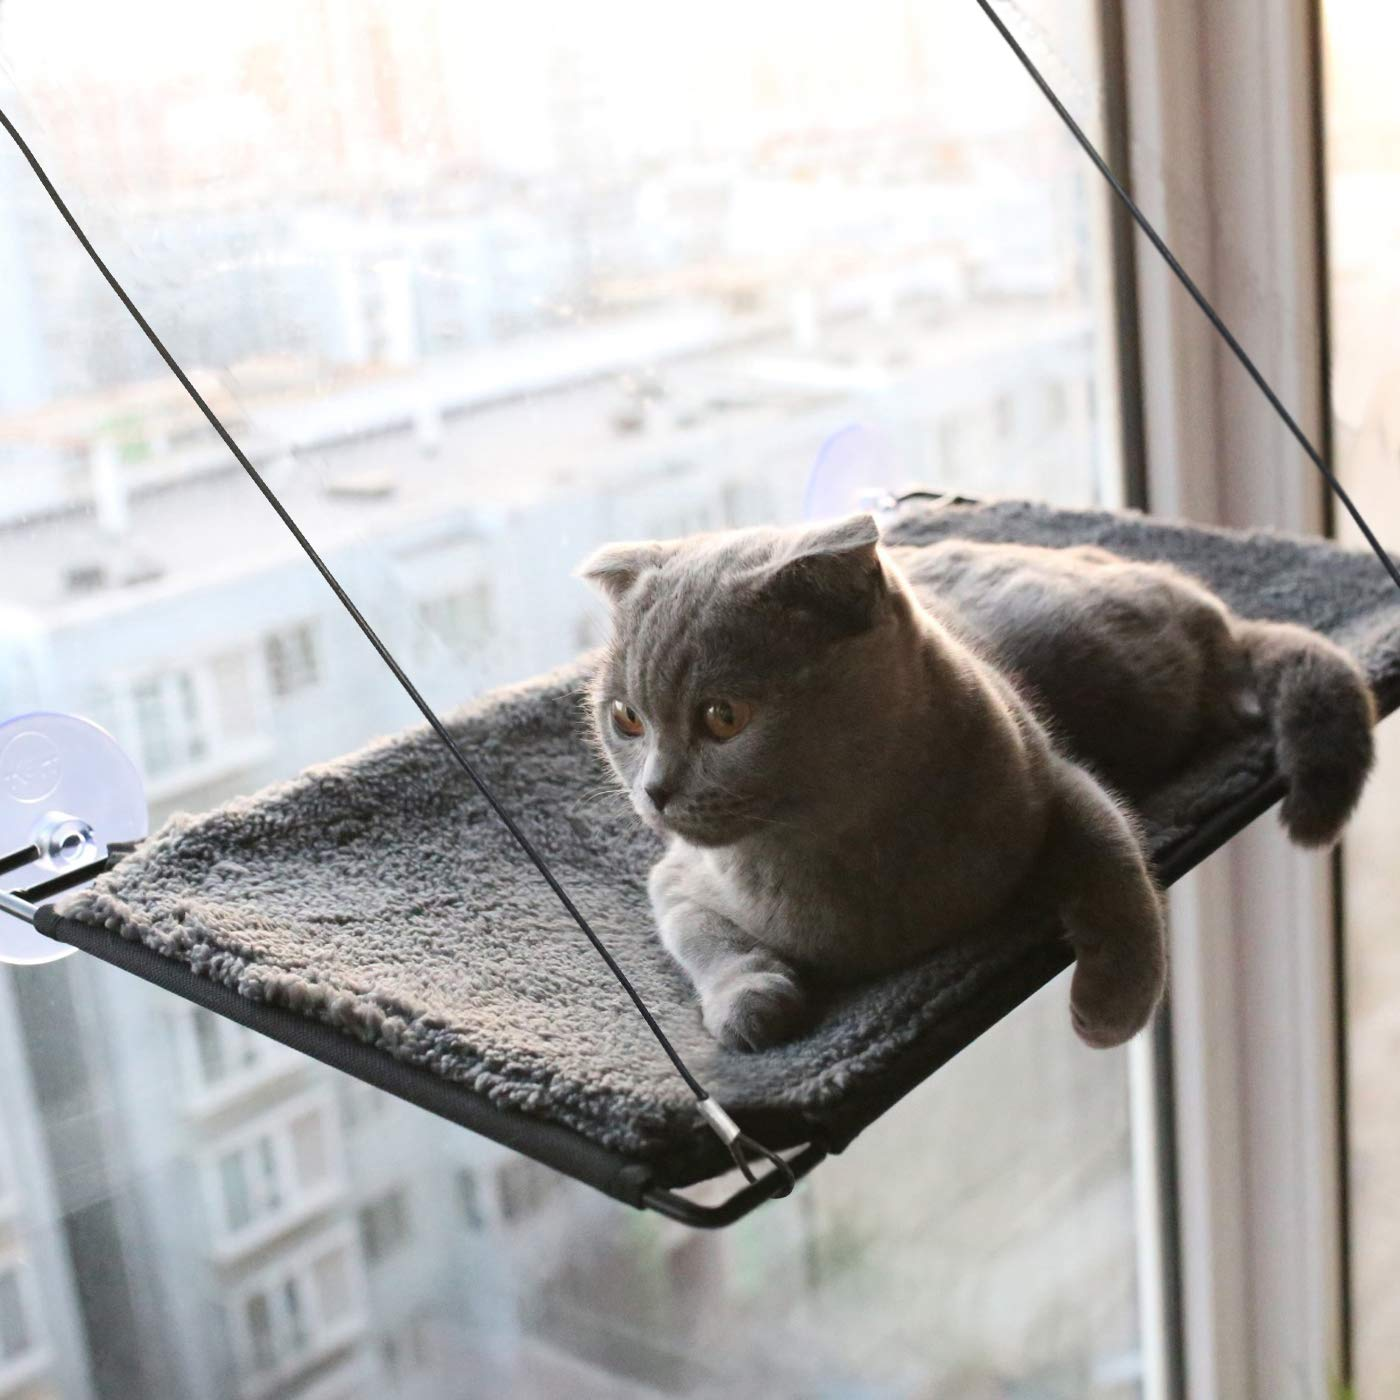 """BobbyPet Cat Window Perch Warm Cotton Fabric - Single Layer 12""""x22.8"""" EXTERMELY Durable Suction Cups can Holds Huge Cats Easy Set up Within 5 Minutes"""